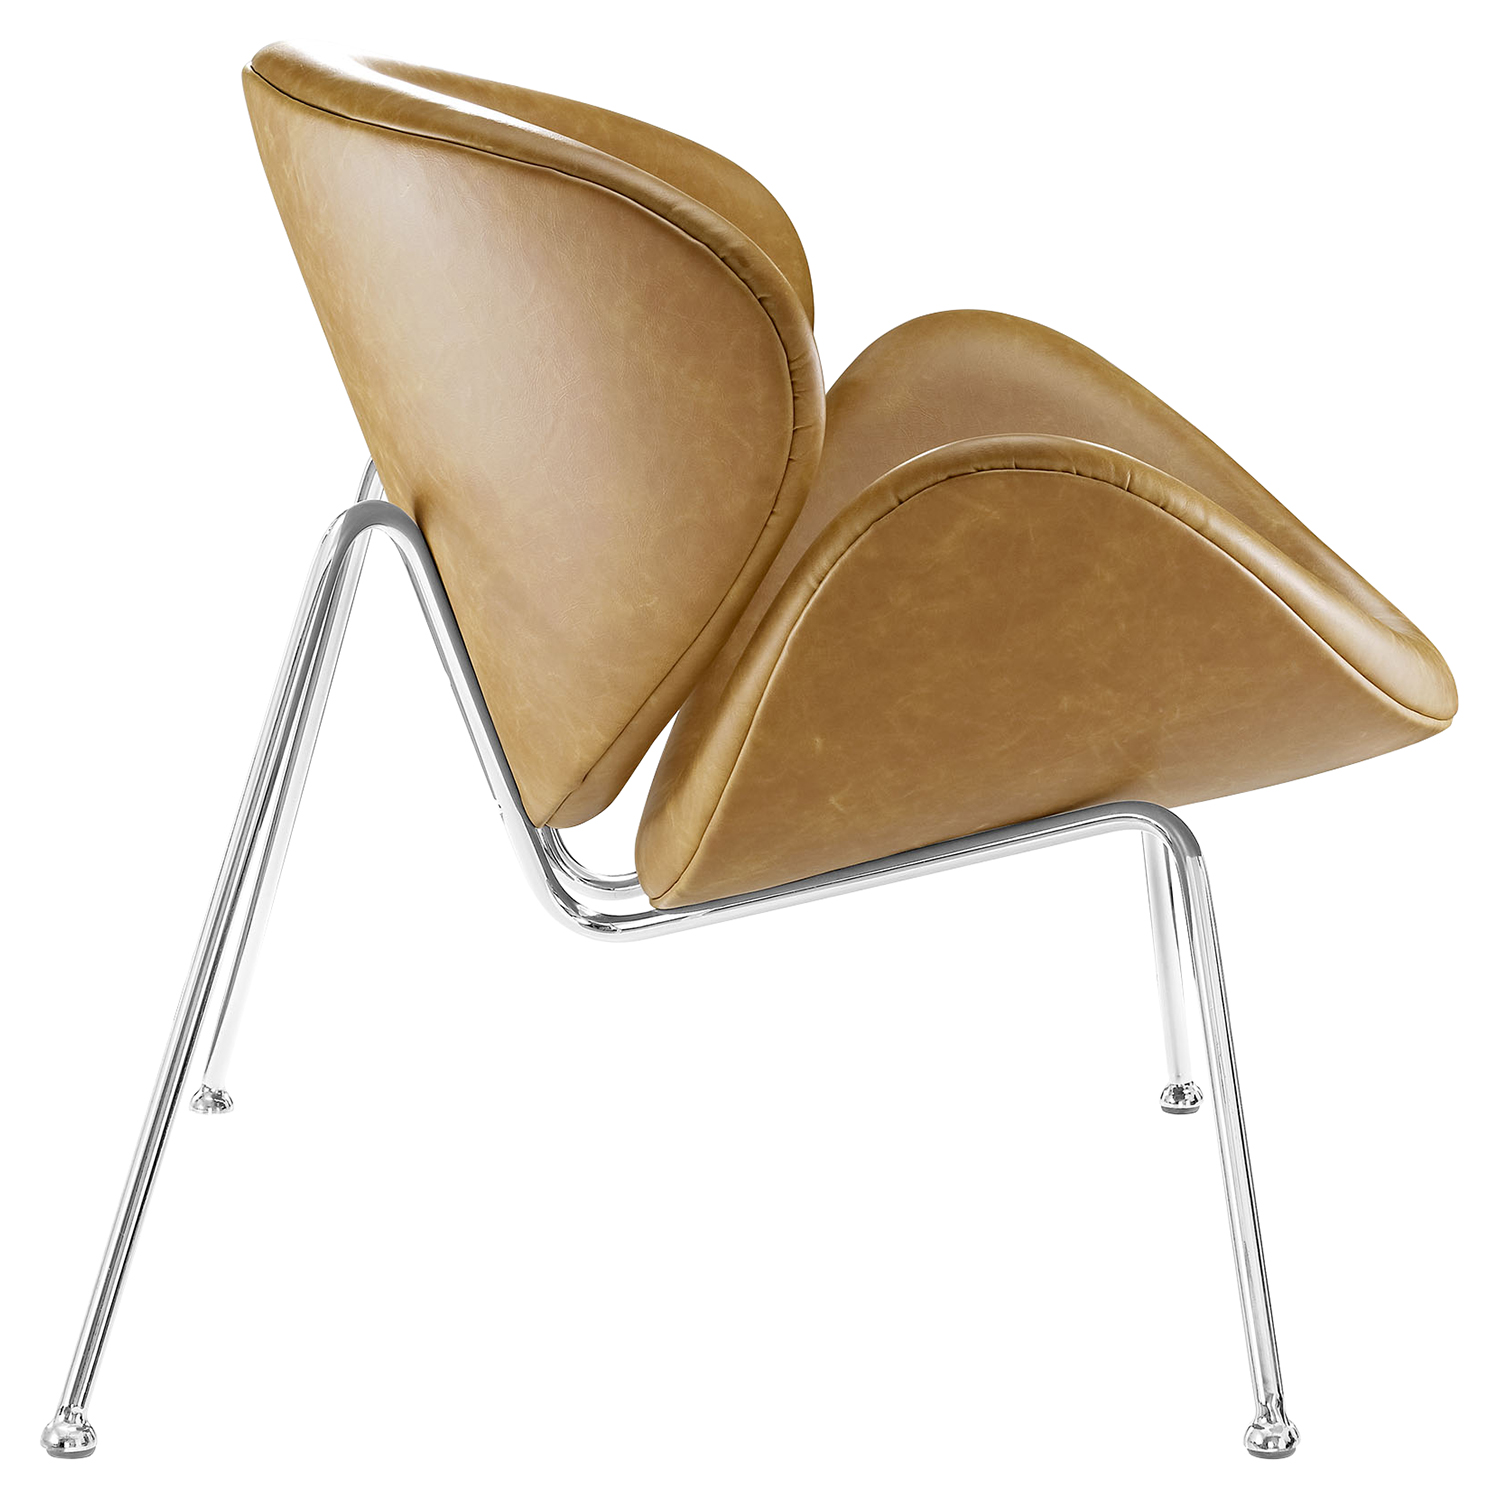 Nutshell Leatherette Lounge Chair - Tan - EEI-809-TAN